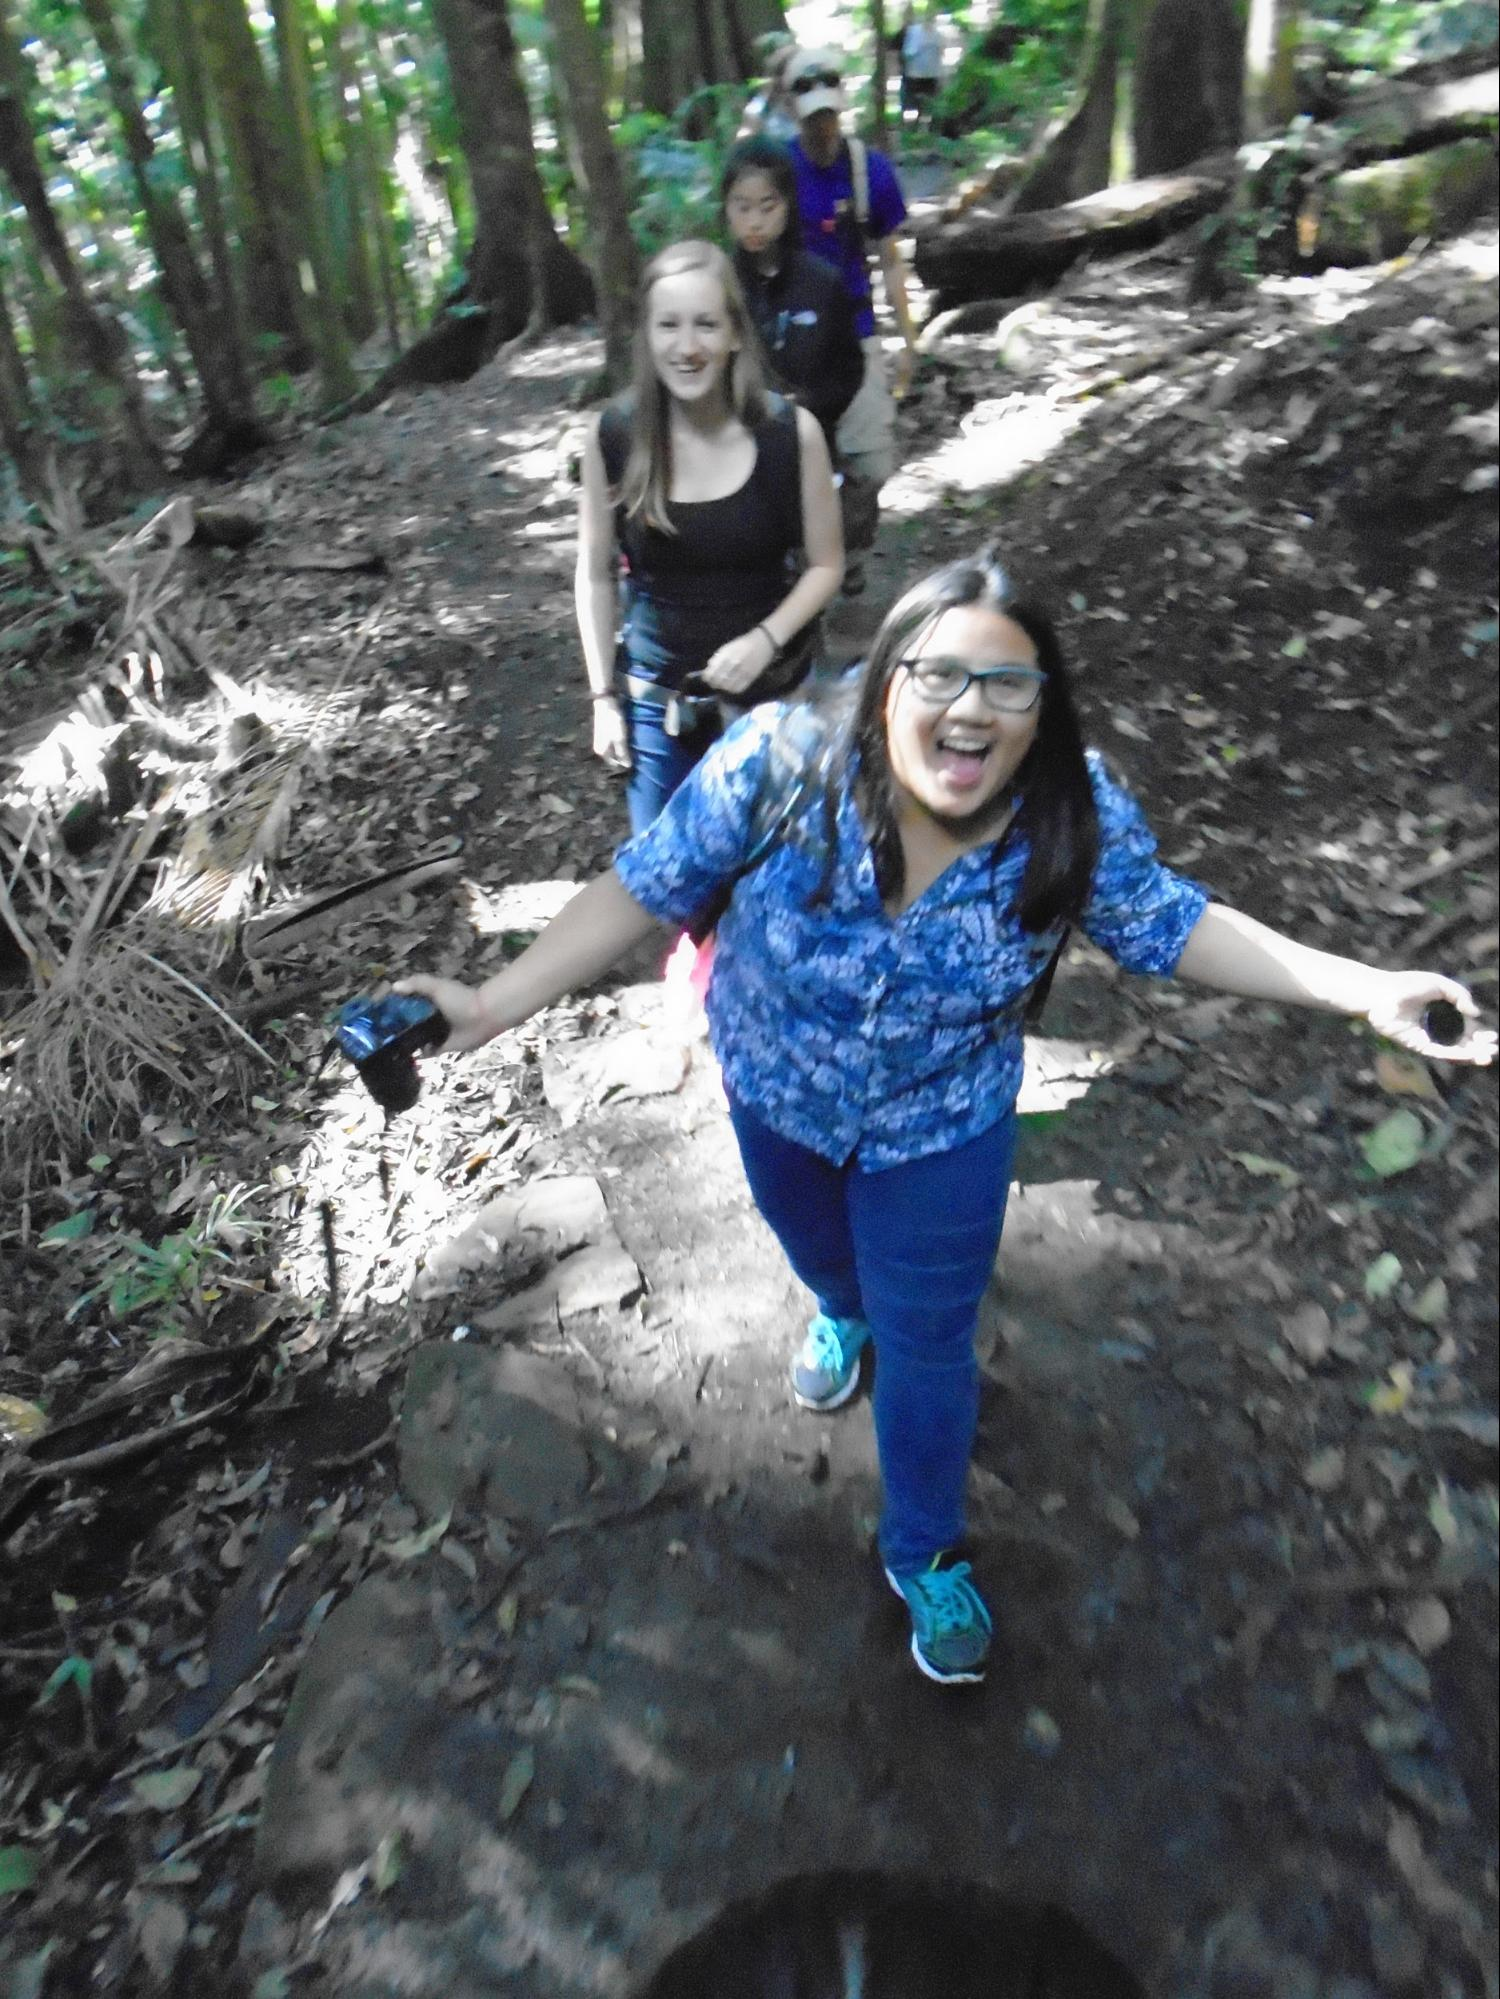 (From back to front) Gizelle Gando, Hannah Olliges, Jessica Trinh, and Dr. Chris Lum walking in the Tambourine Rainforest